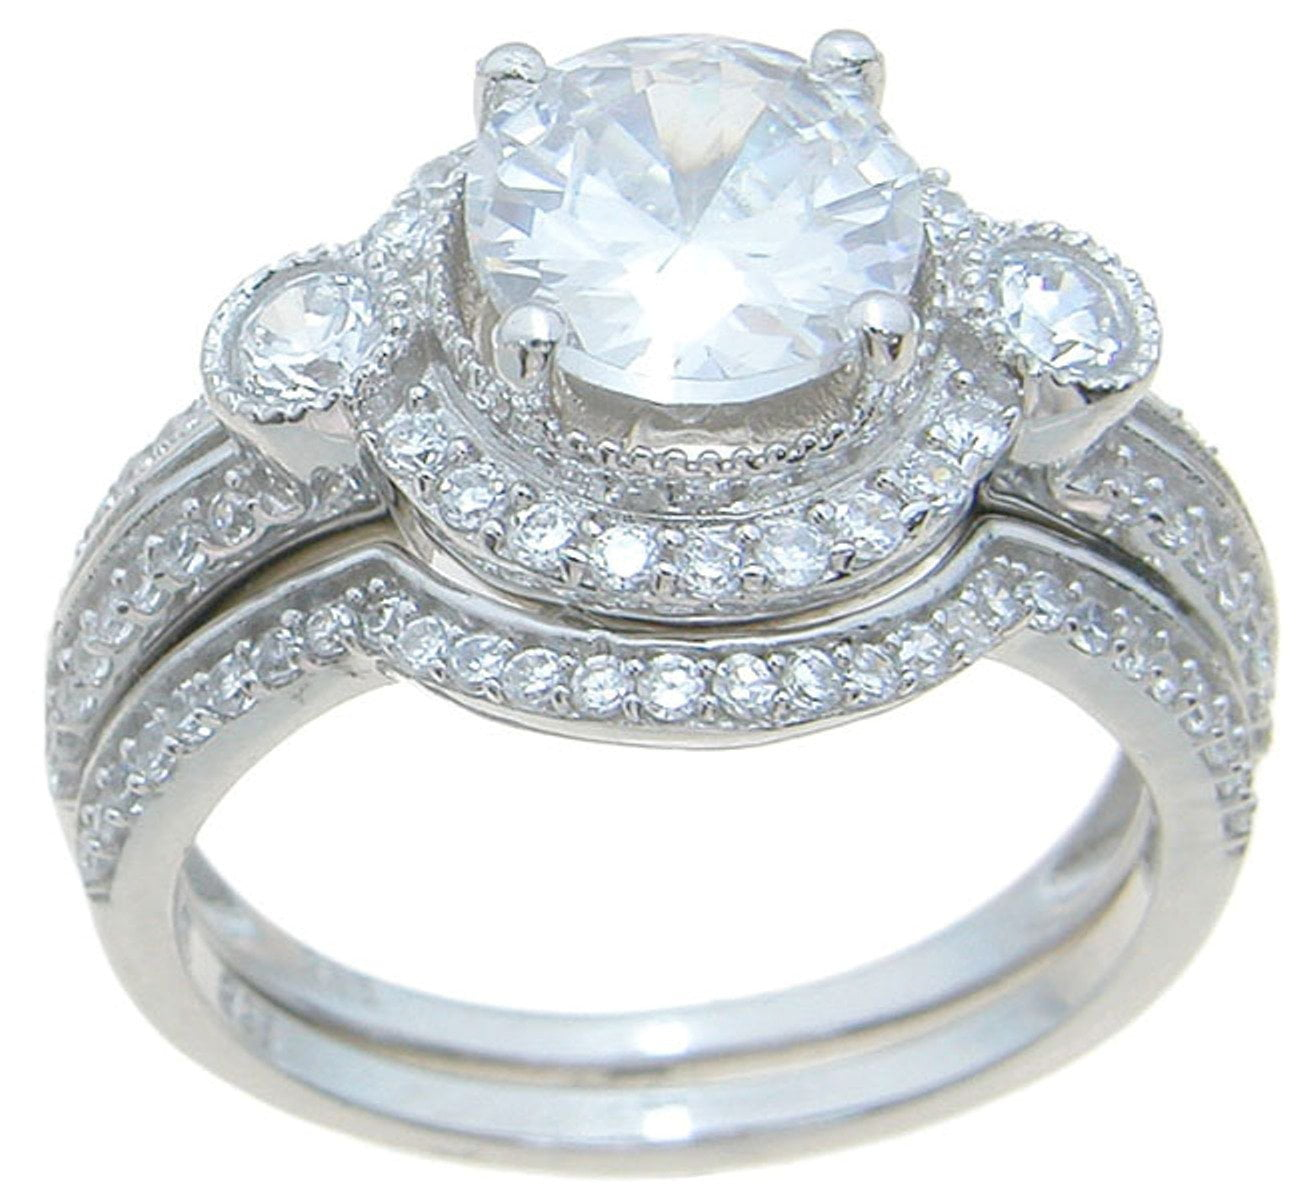 Vintage Style Silver CZ Wedding Engagment Ring Set